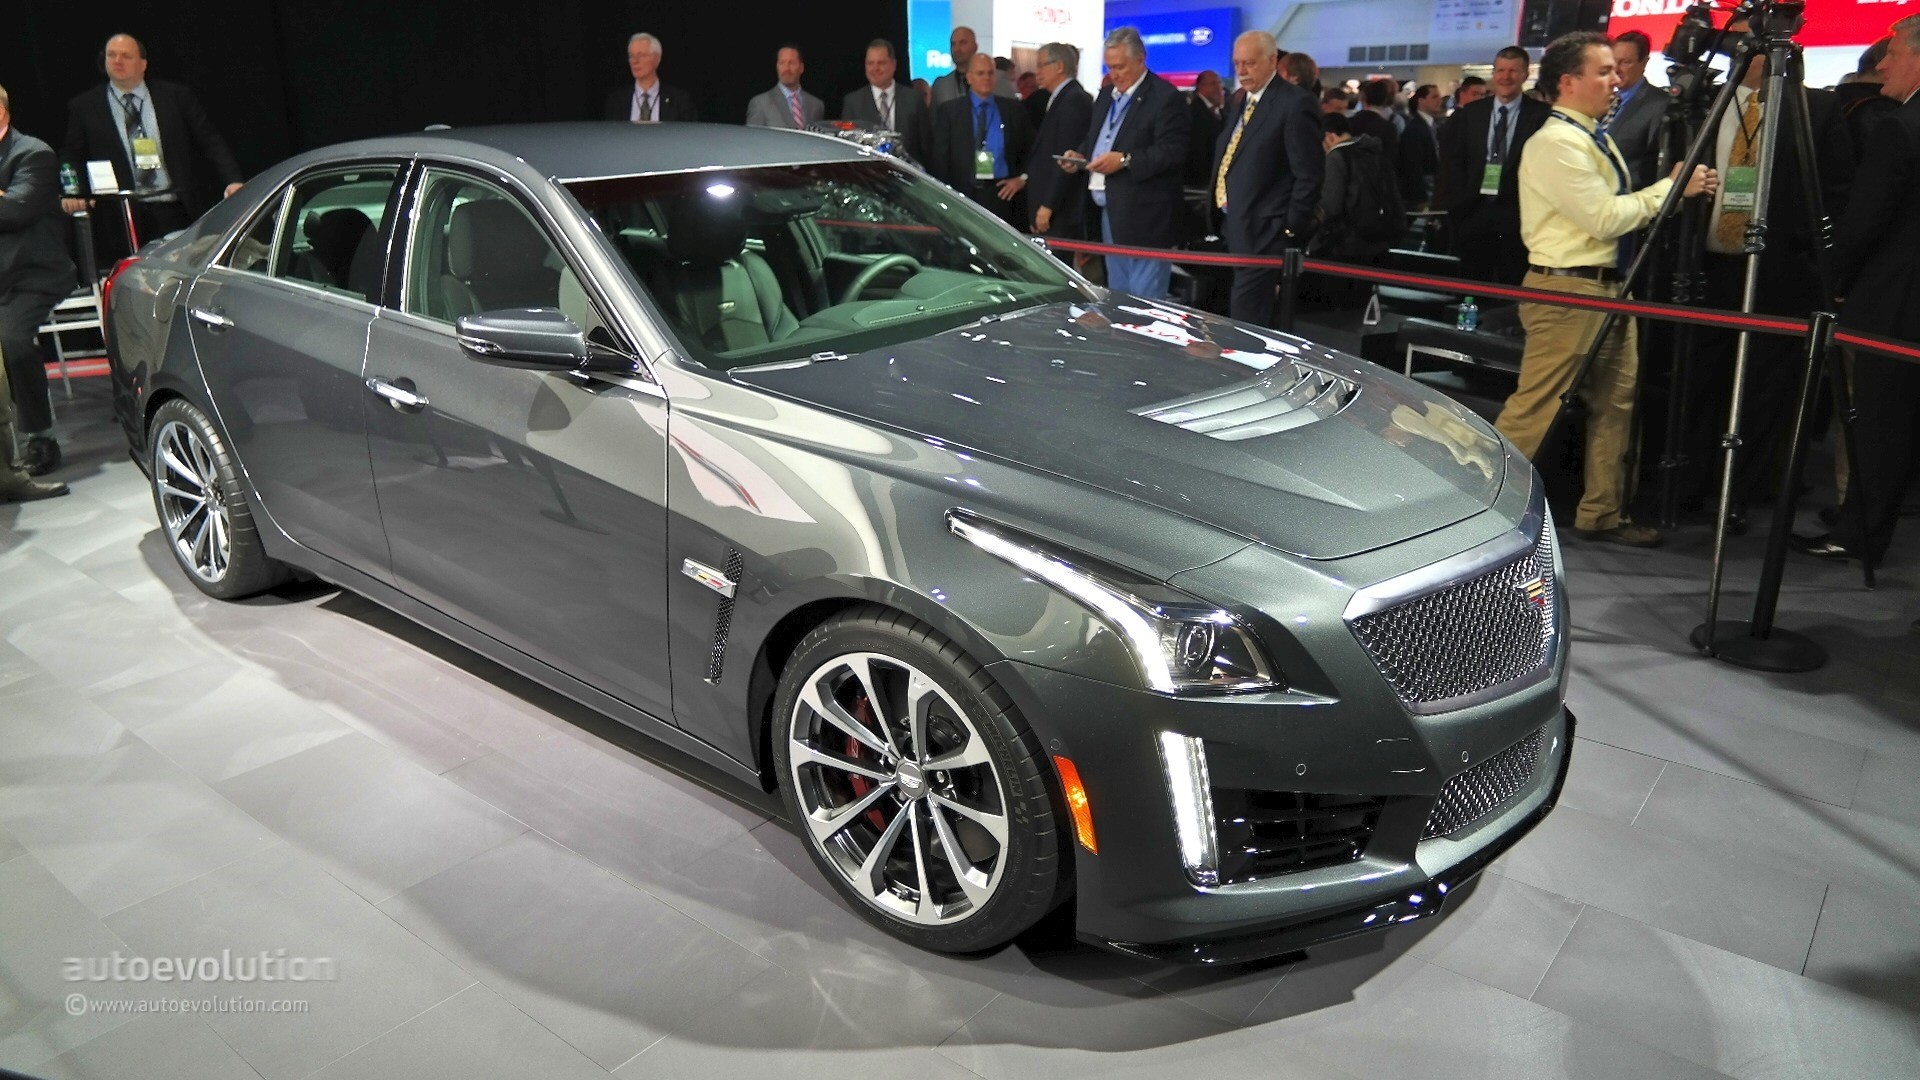 2016 cadillac cts v shows detroit what a performance sedan is all about live photos. Black Bedroom Furniture Sets. Home Design Ideas